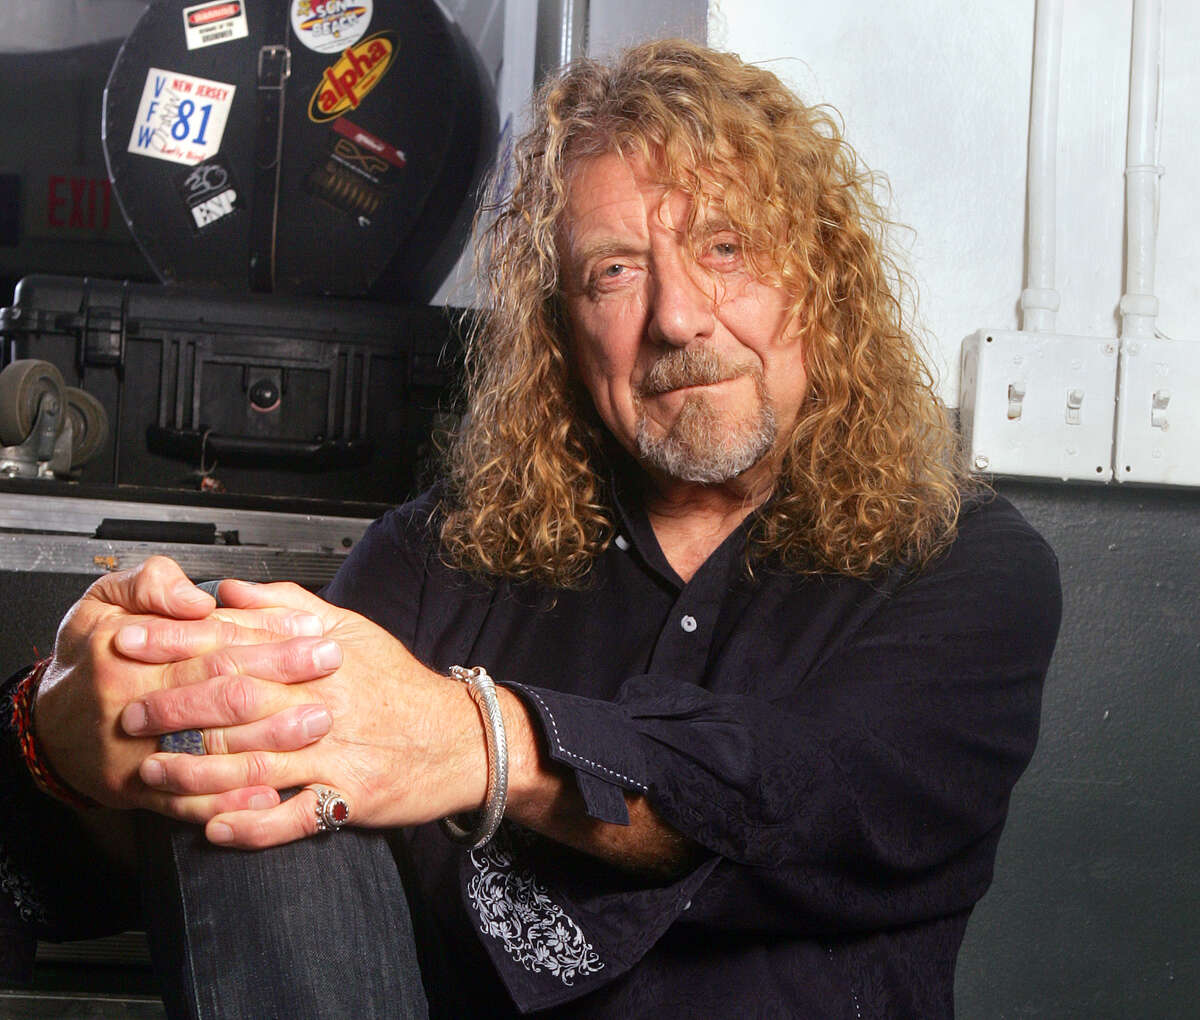 This July 30, 2010 file photo shows singer Robert Plant posing at Bayfront Amphitheatre in Miami. Plant dined at Osteria Stellina in Pointe Reyes Station this week.